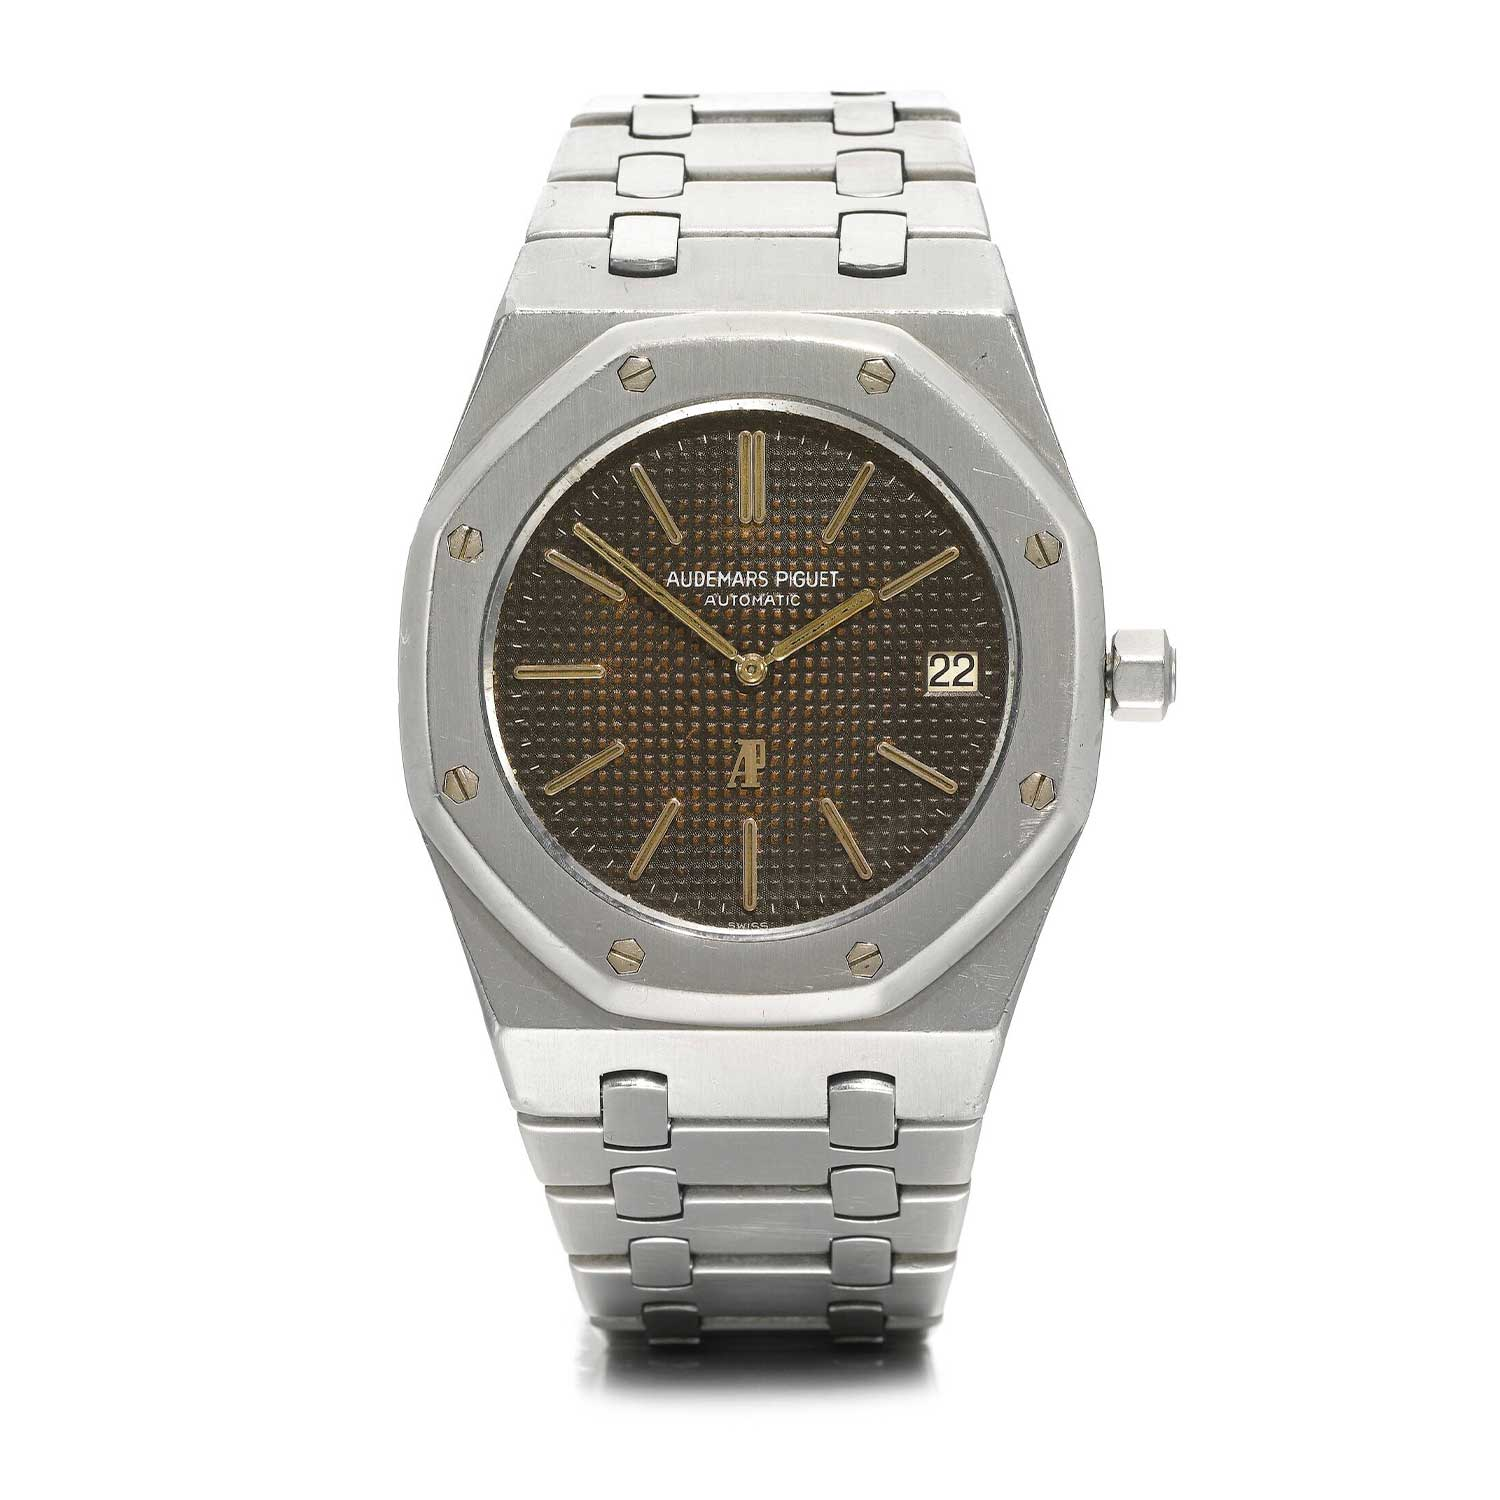 Designed by the one and only Gérald Genta for Audemars Piguet, the 39mm stainless steel Royal Oak 5402 cost as much as a Jaguar when it was introduced in 1972 (Image: sothebys.com)